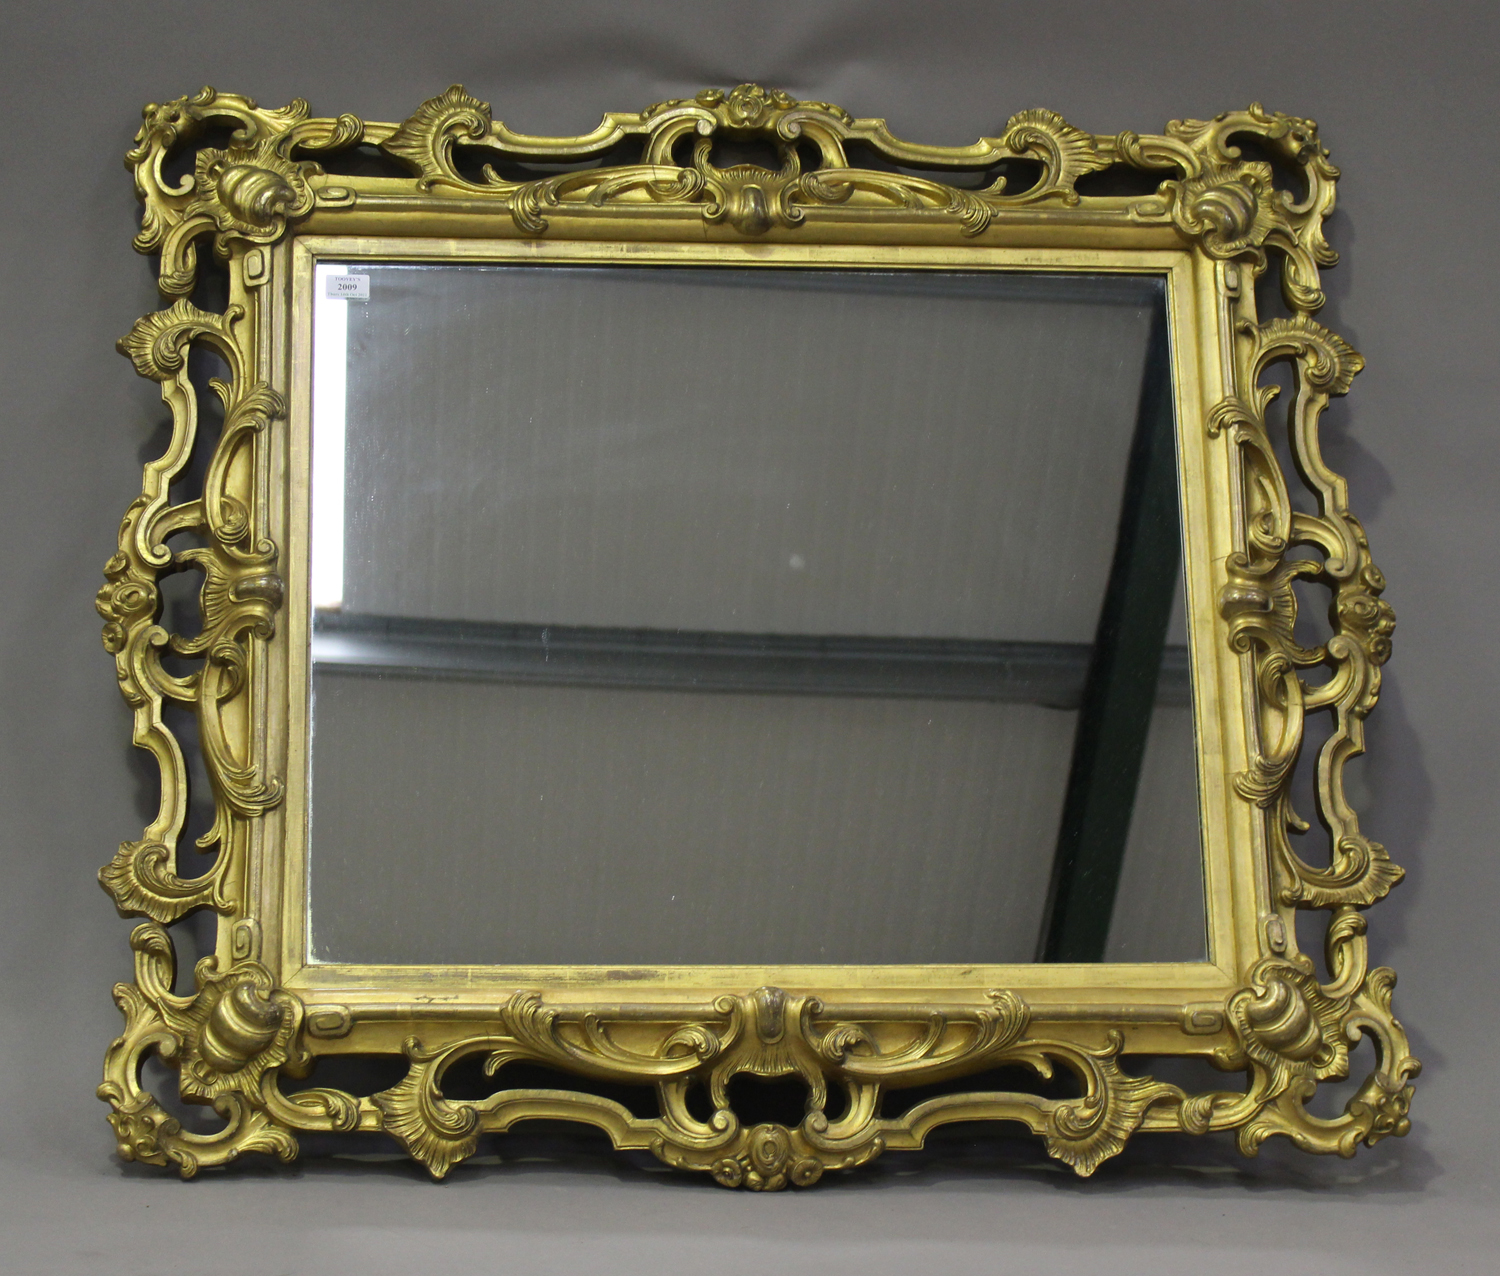 A mid/late Victorian carved gilt wood and gesso framed wall mirror, decorated with leaf and 'C'